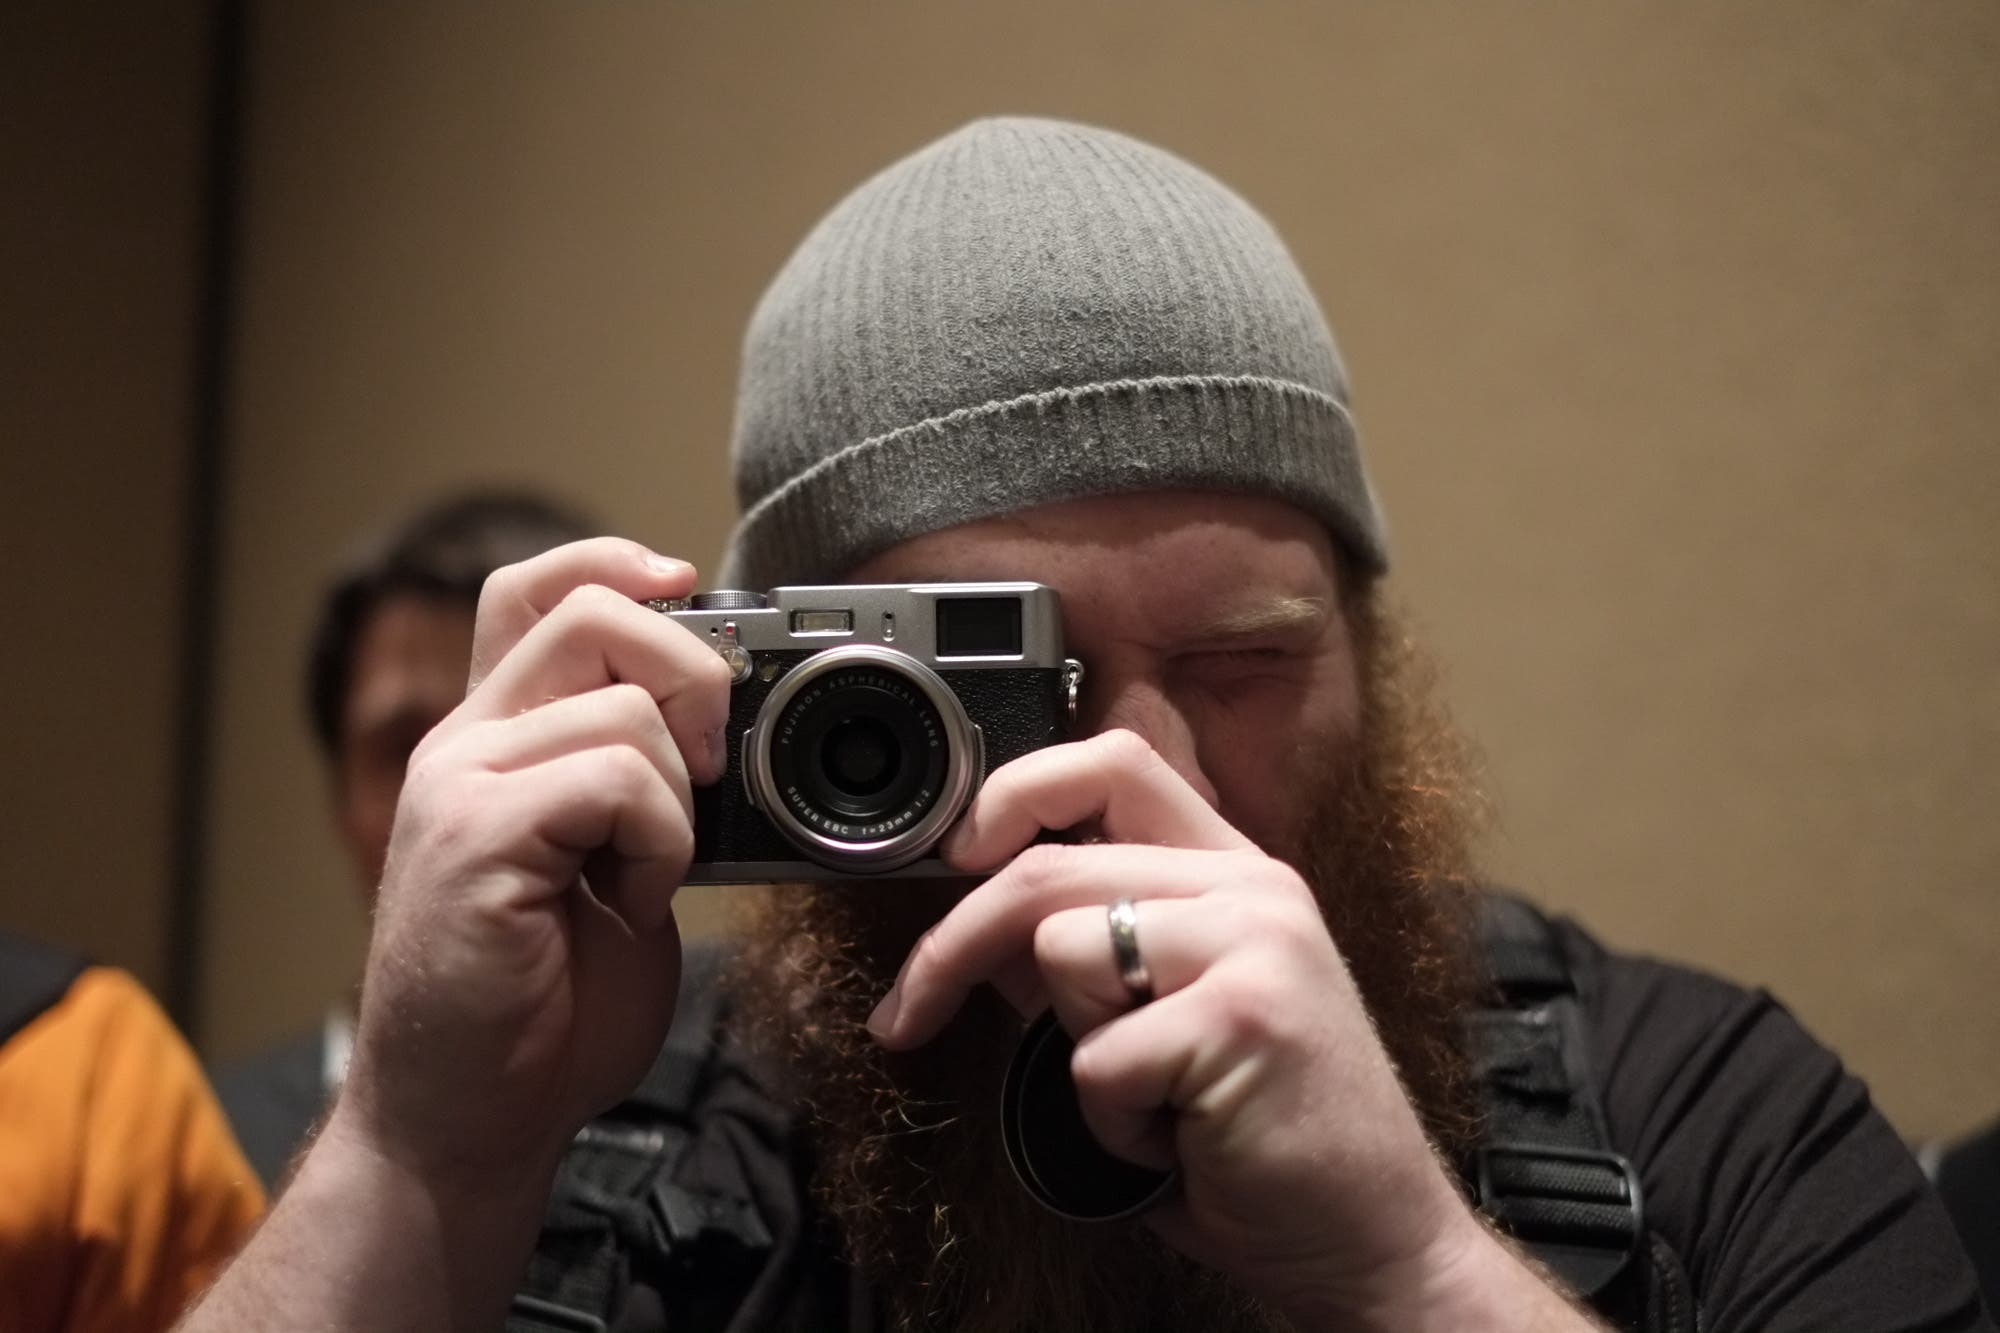 You Won't Hear the Fujifilm X100s' Shutter Over Obnoxiously Loud Party Goers